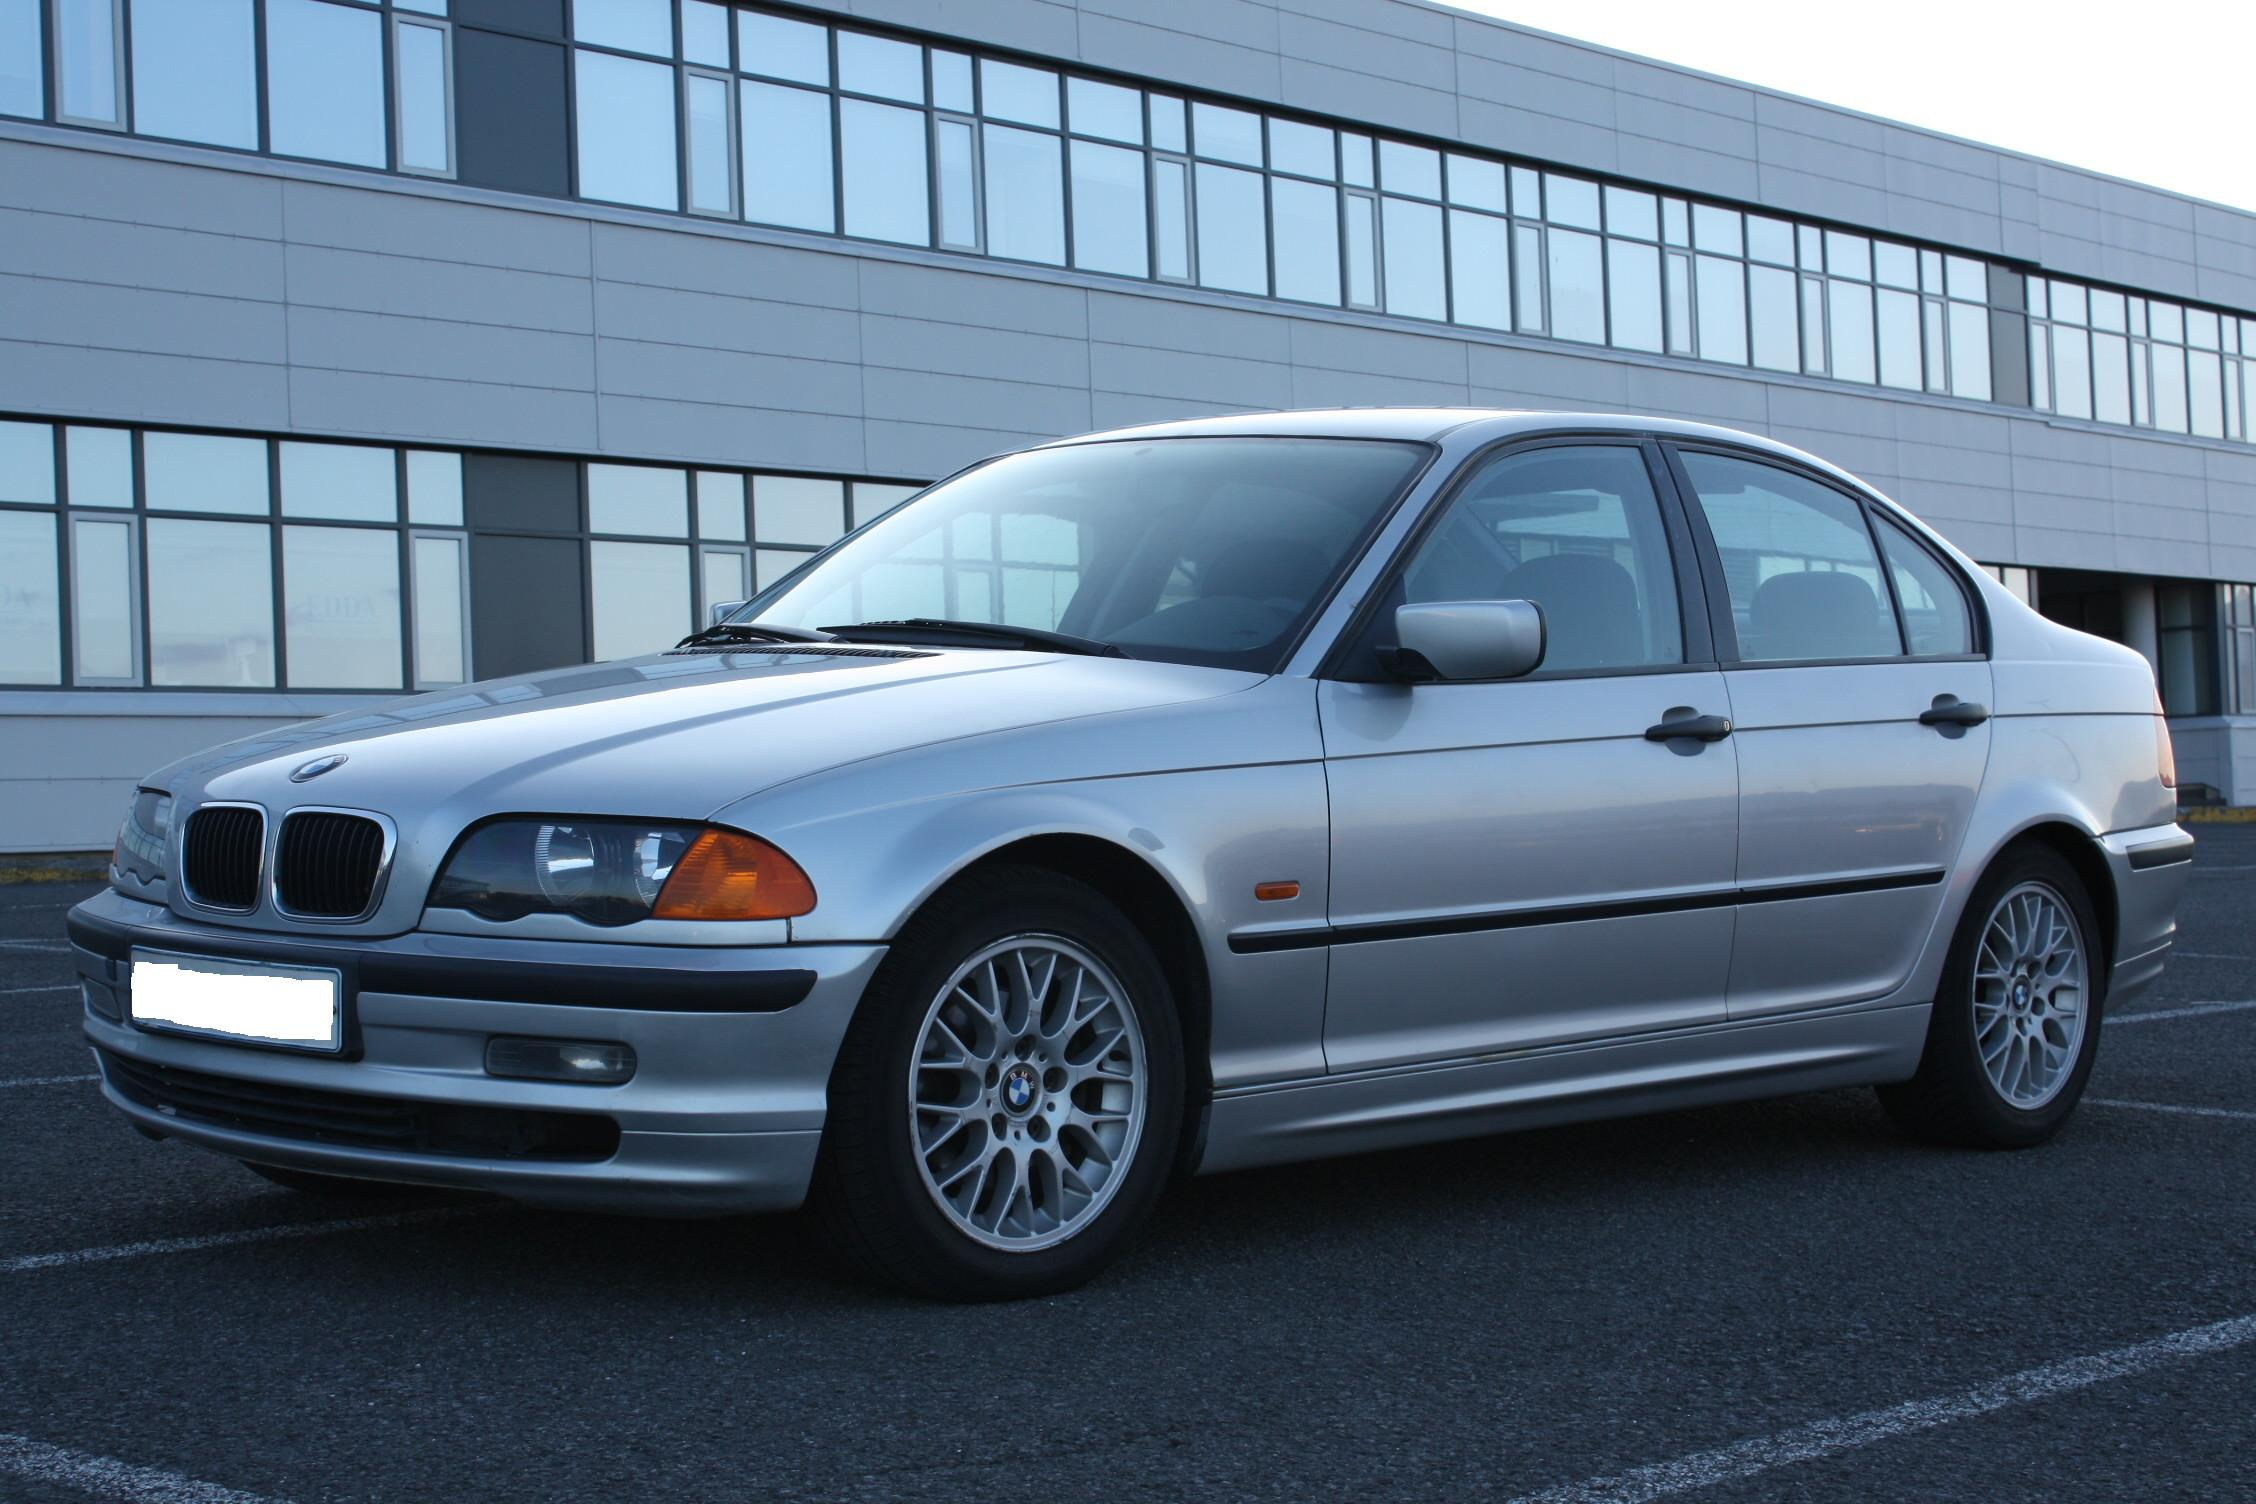 Bmw 316 2008 Review Amazing Pictures And Images Look At The Car